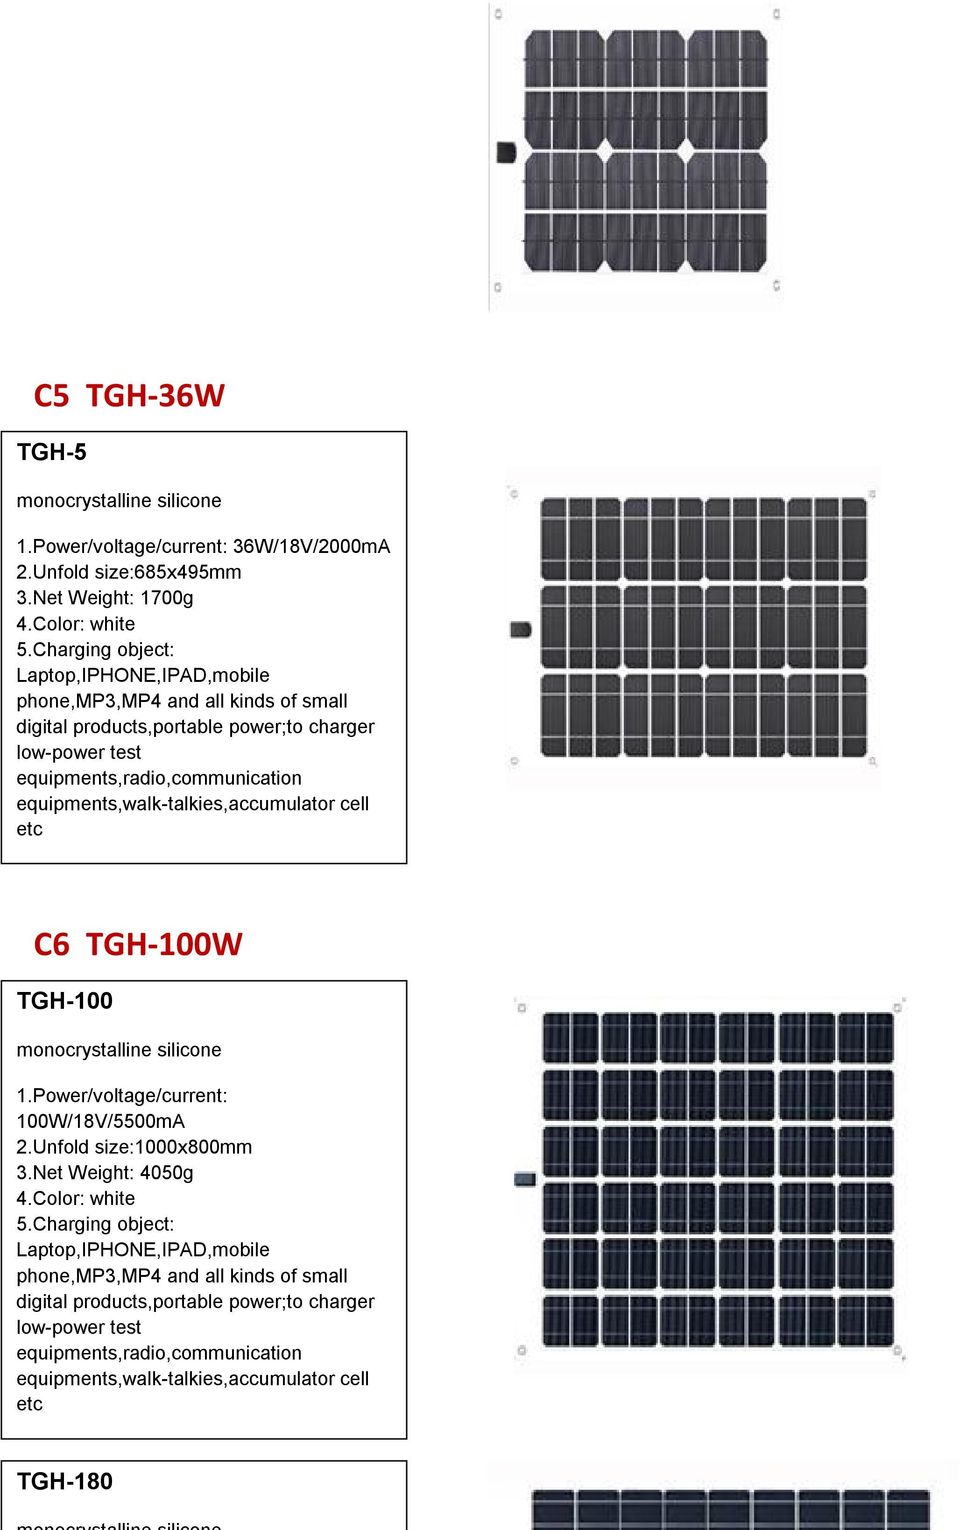 equipments,walk-talkies,accumulator cell etc C6 TGH-100W TGH-100 monocrystalline silicone 1.Power/voltage/current: 100W/18V/5500mA 2.Unfold size:1000x800mm 3.Net Weight: 4050g 4.